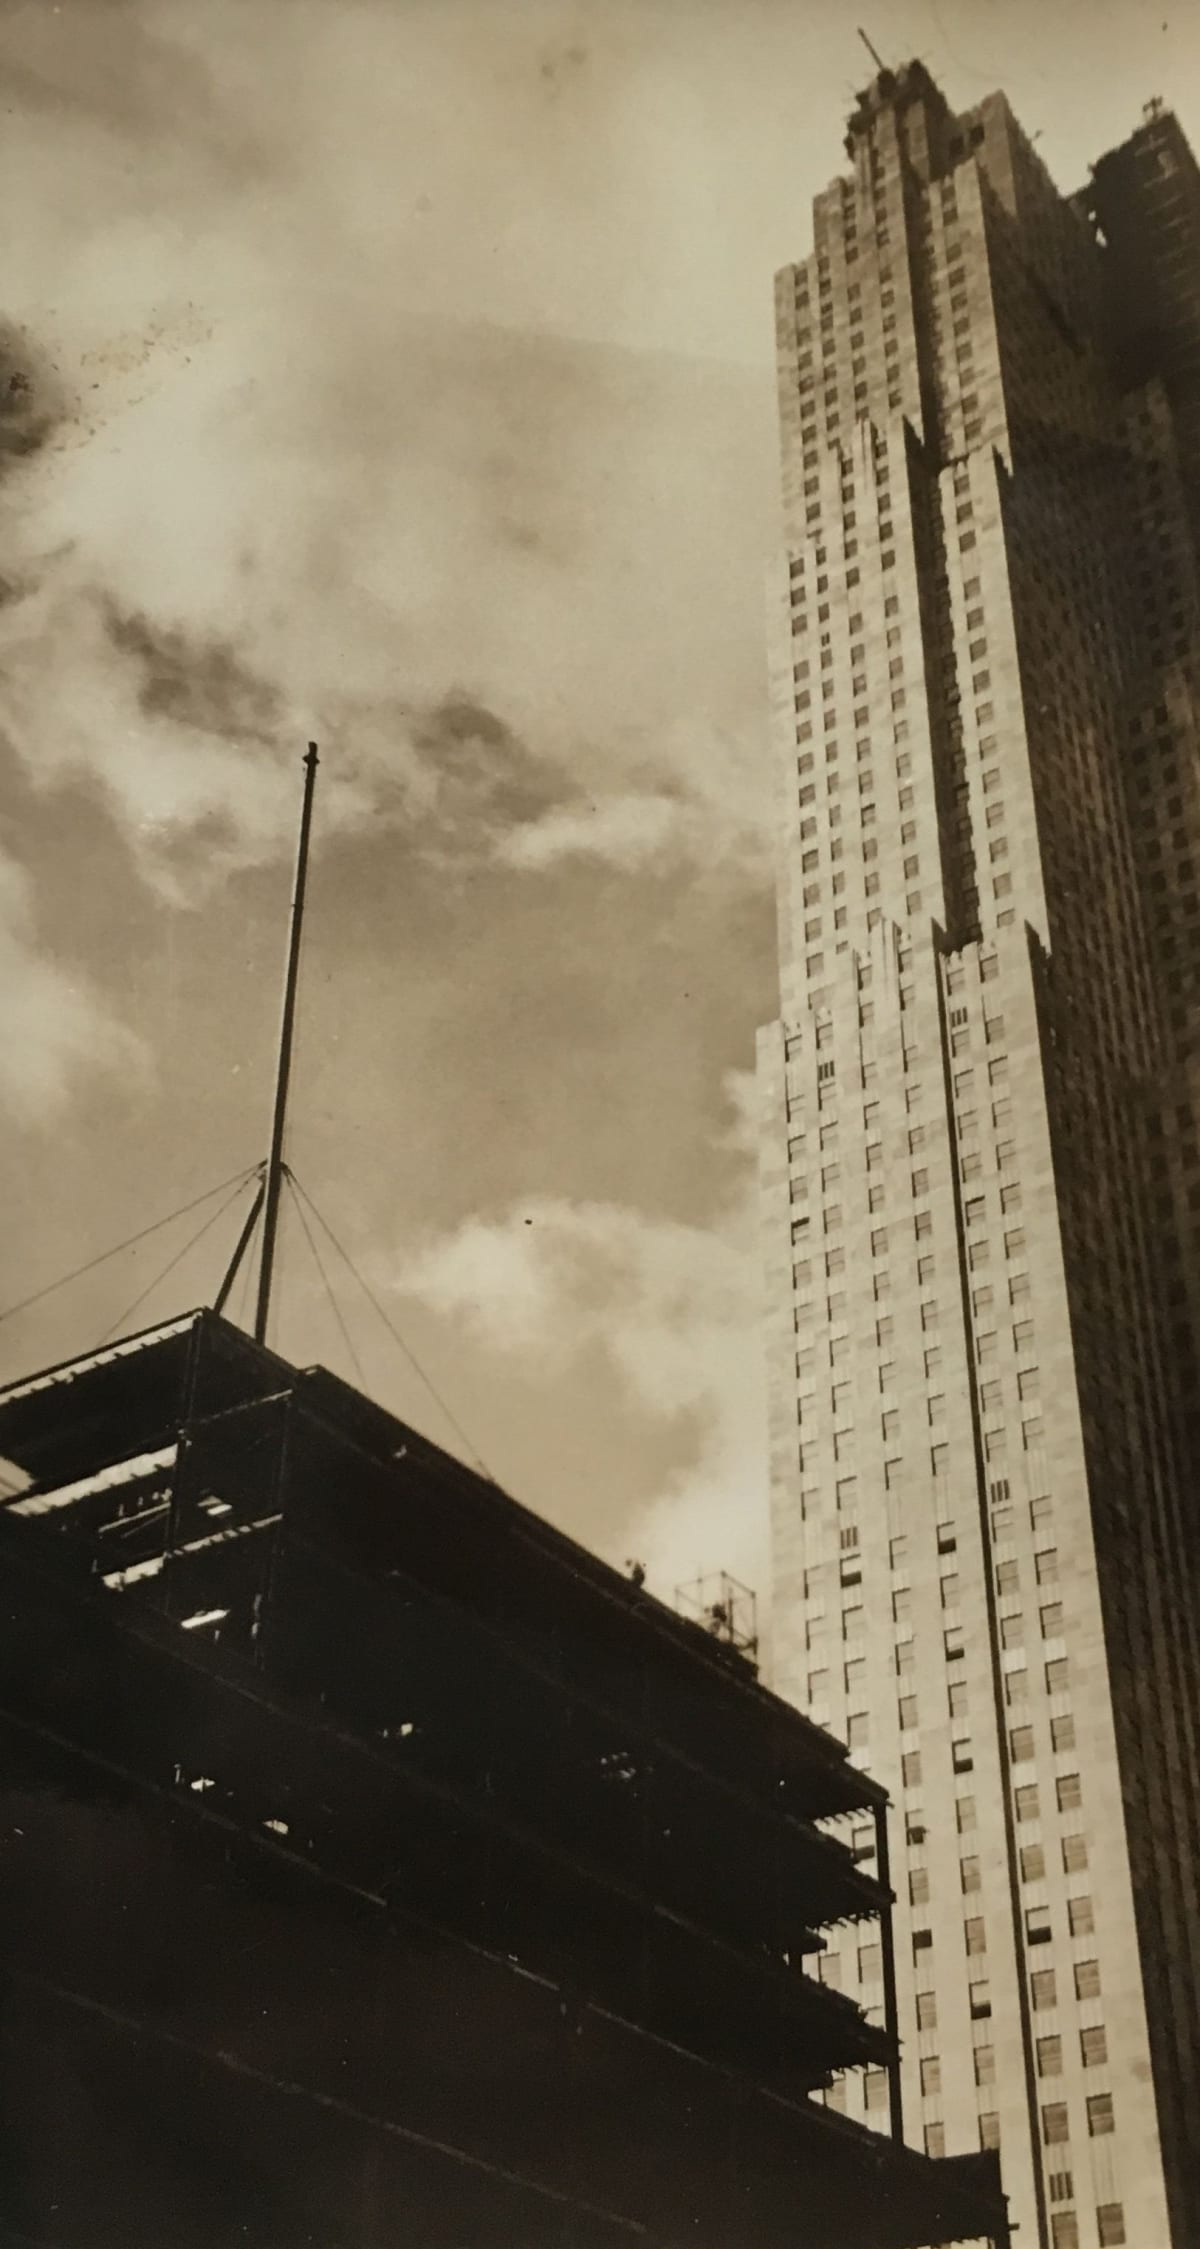 Fred Zinnemann Untitled [skyscrapers], 1932 Vintage gelatin silver print 4 1/8 x 2 3/8 inches